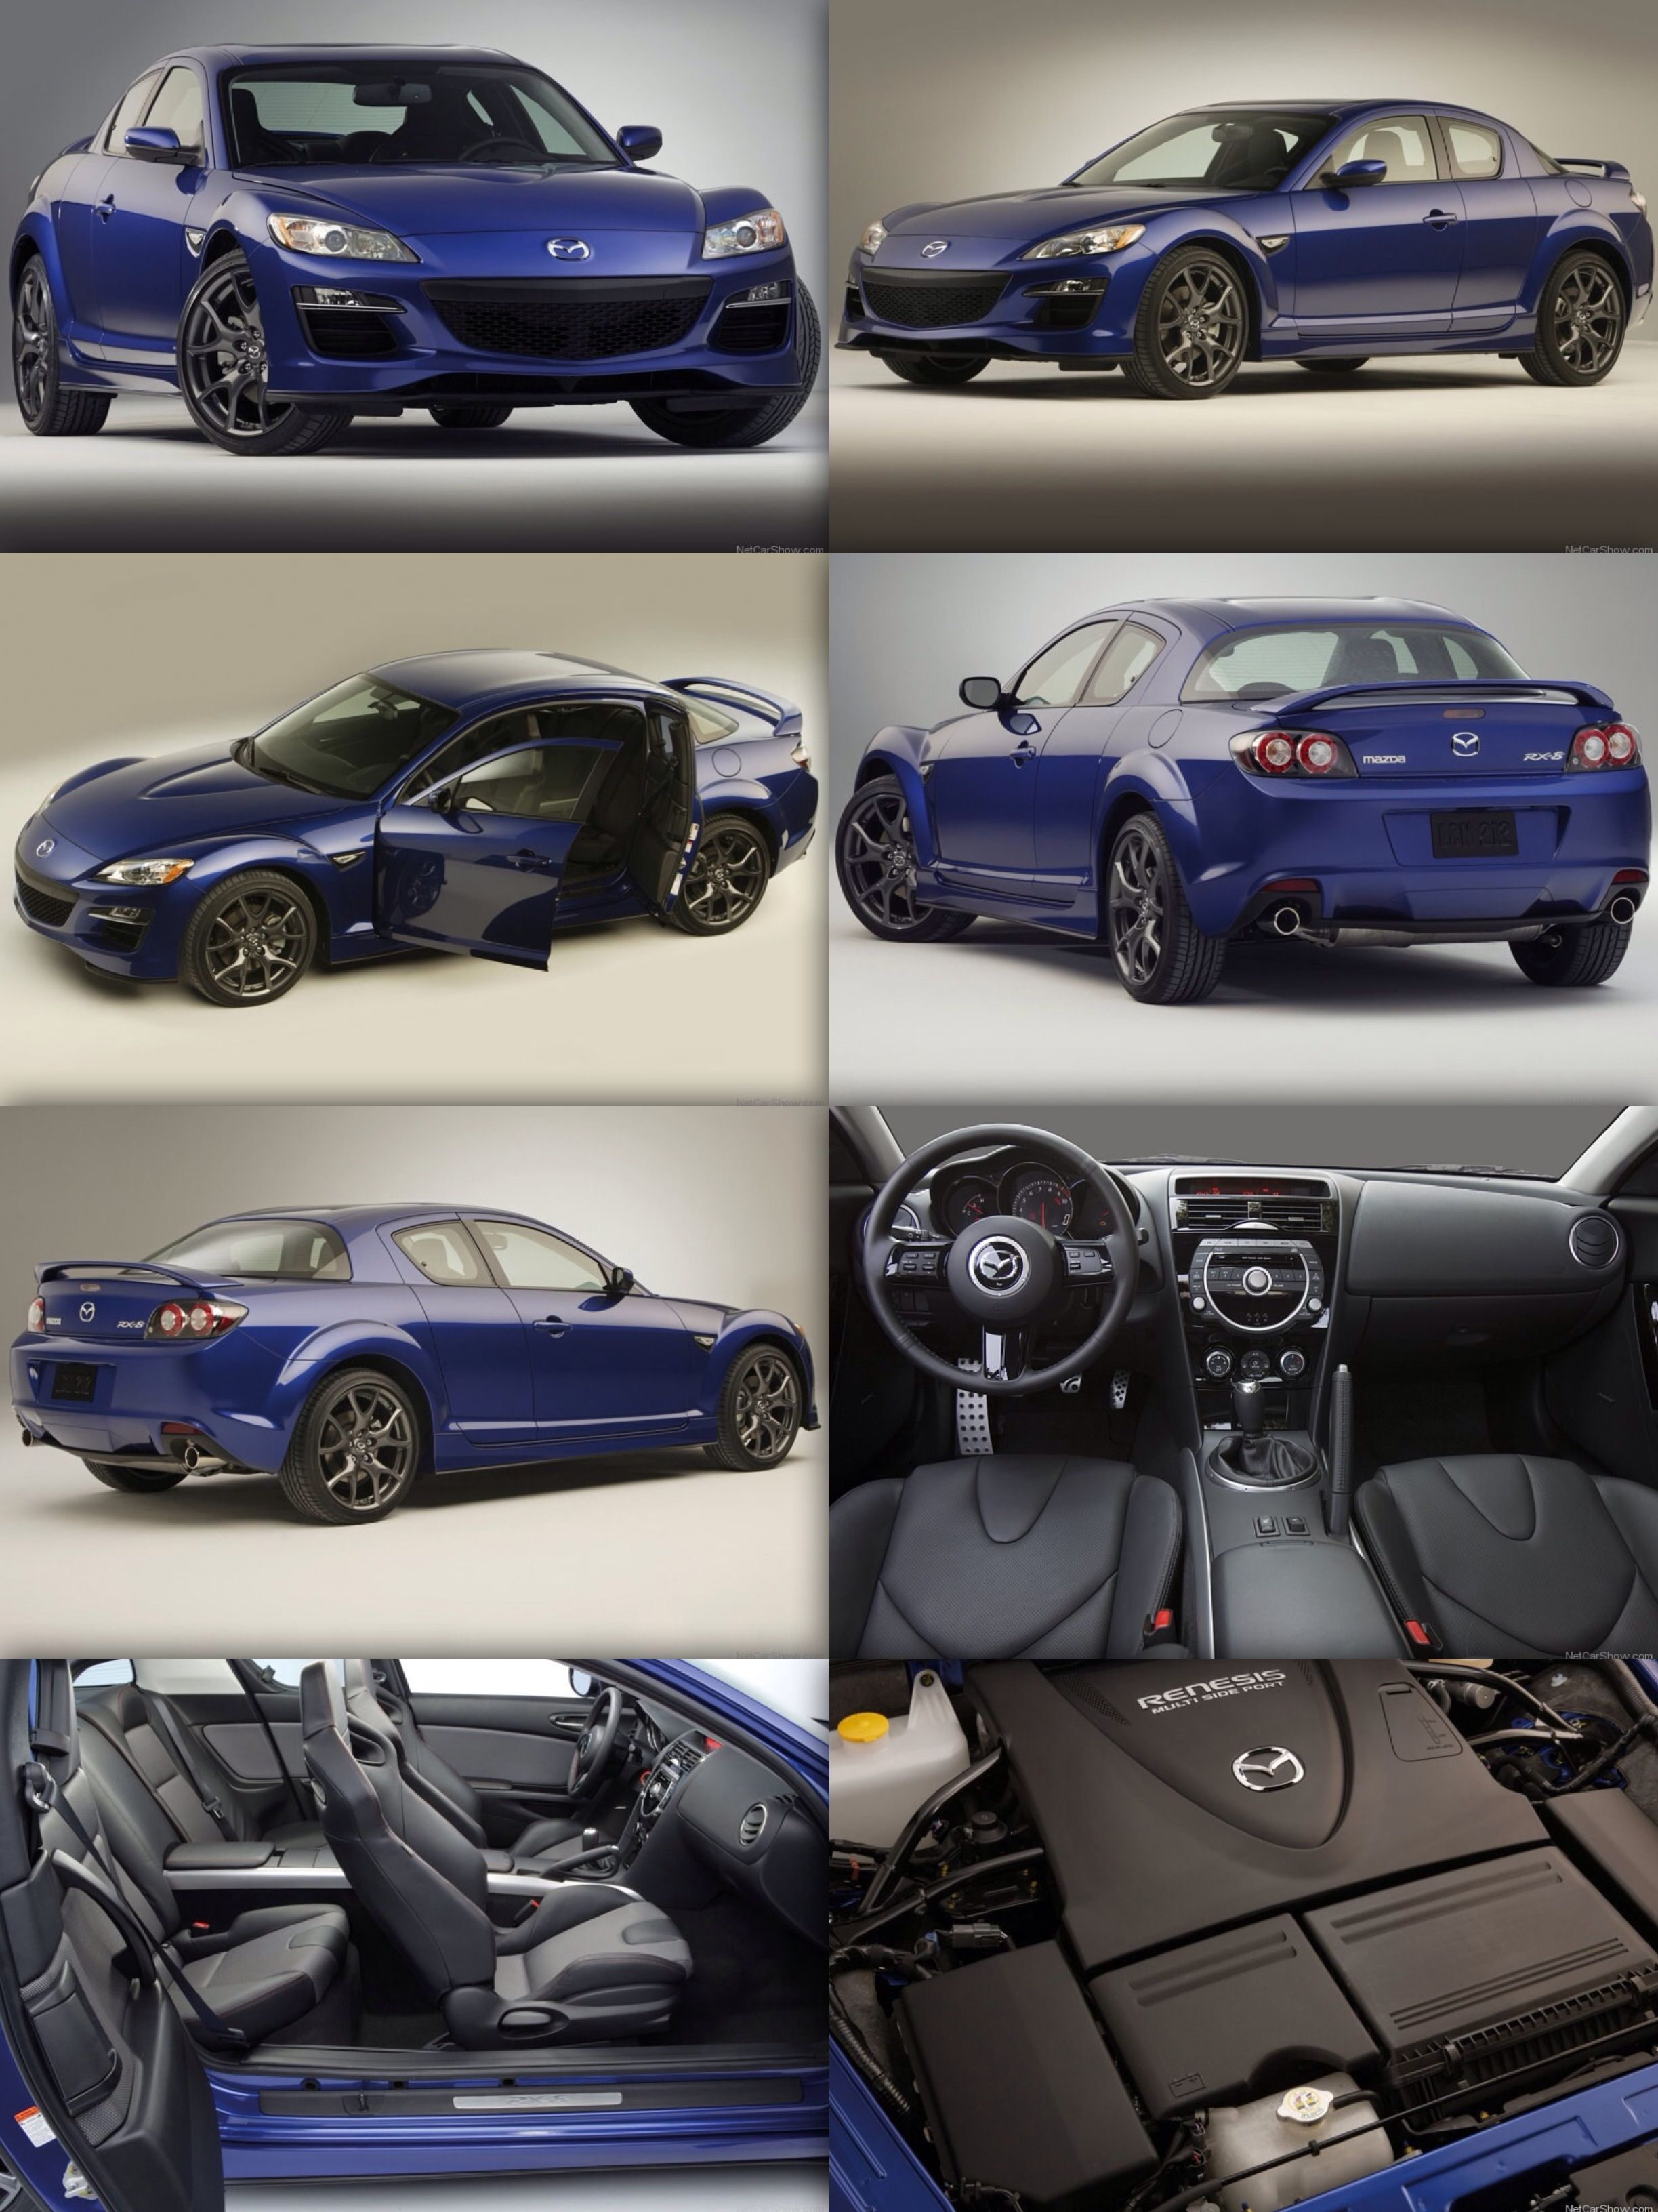 Mazda Rx 8 Now Have This Beauty In All Black And Baby Blue Seats